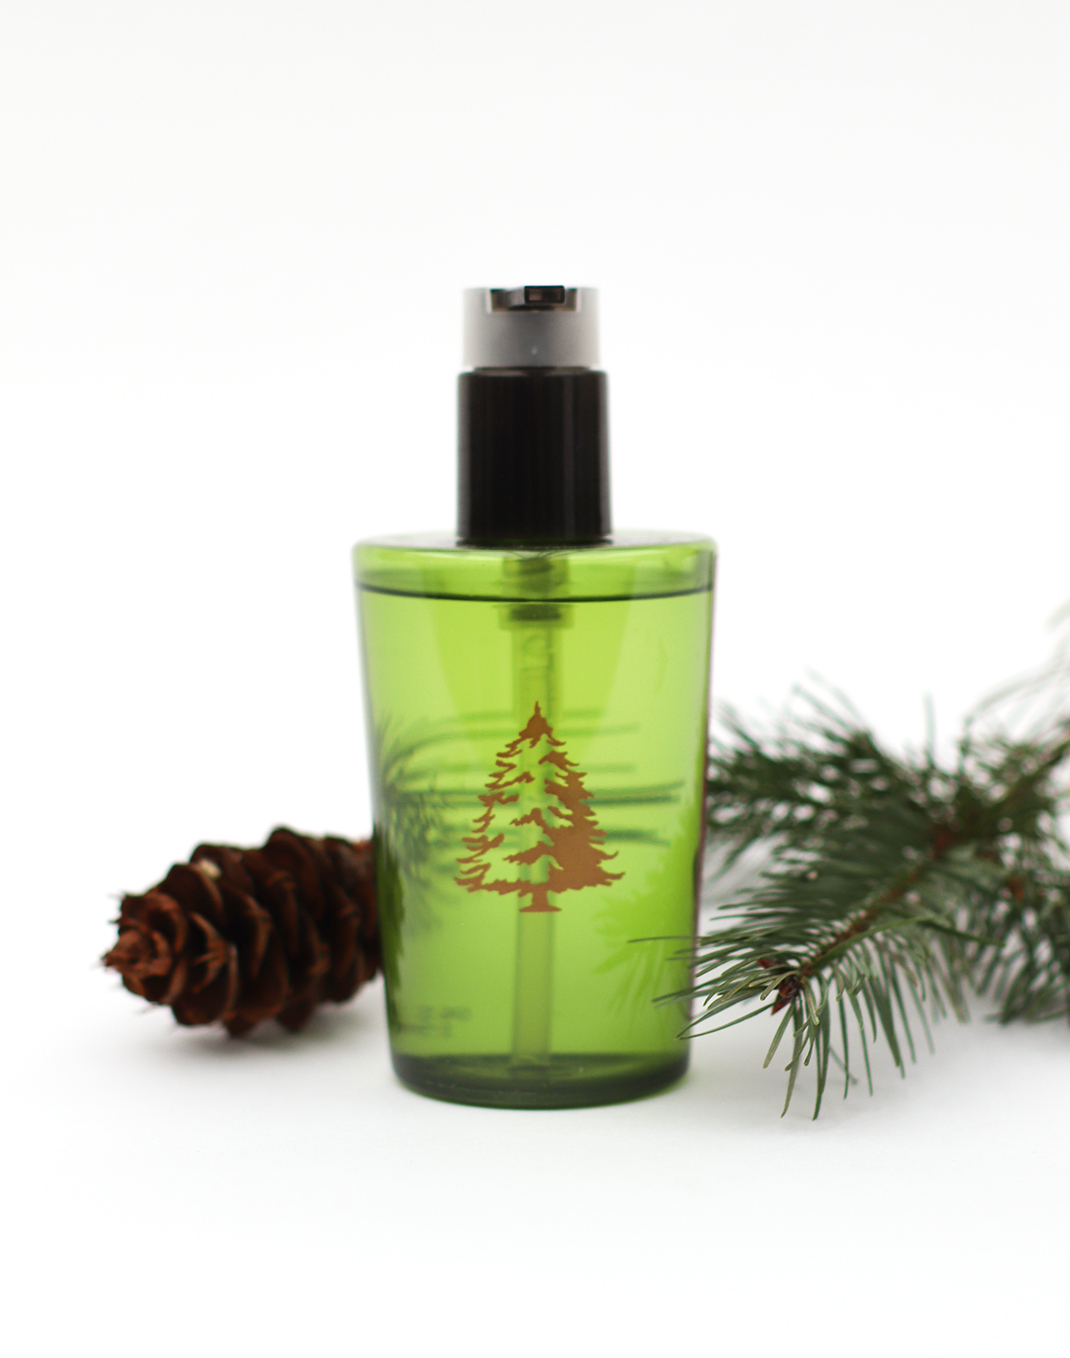 Thymes Frasier Fir Heritage Hand Wash